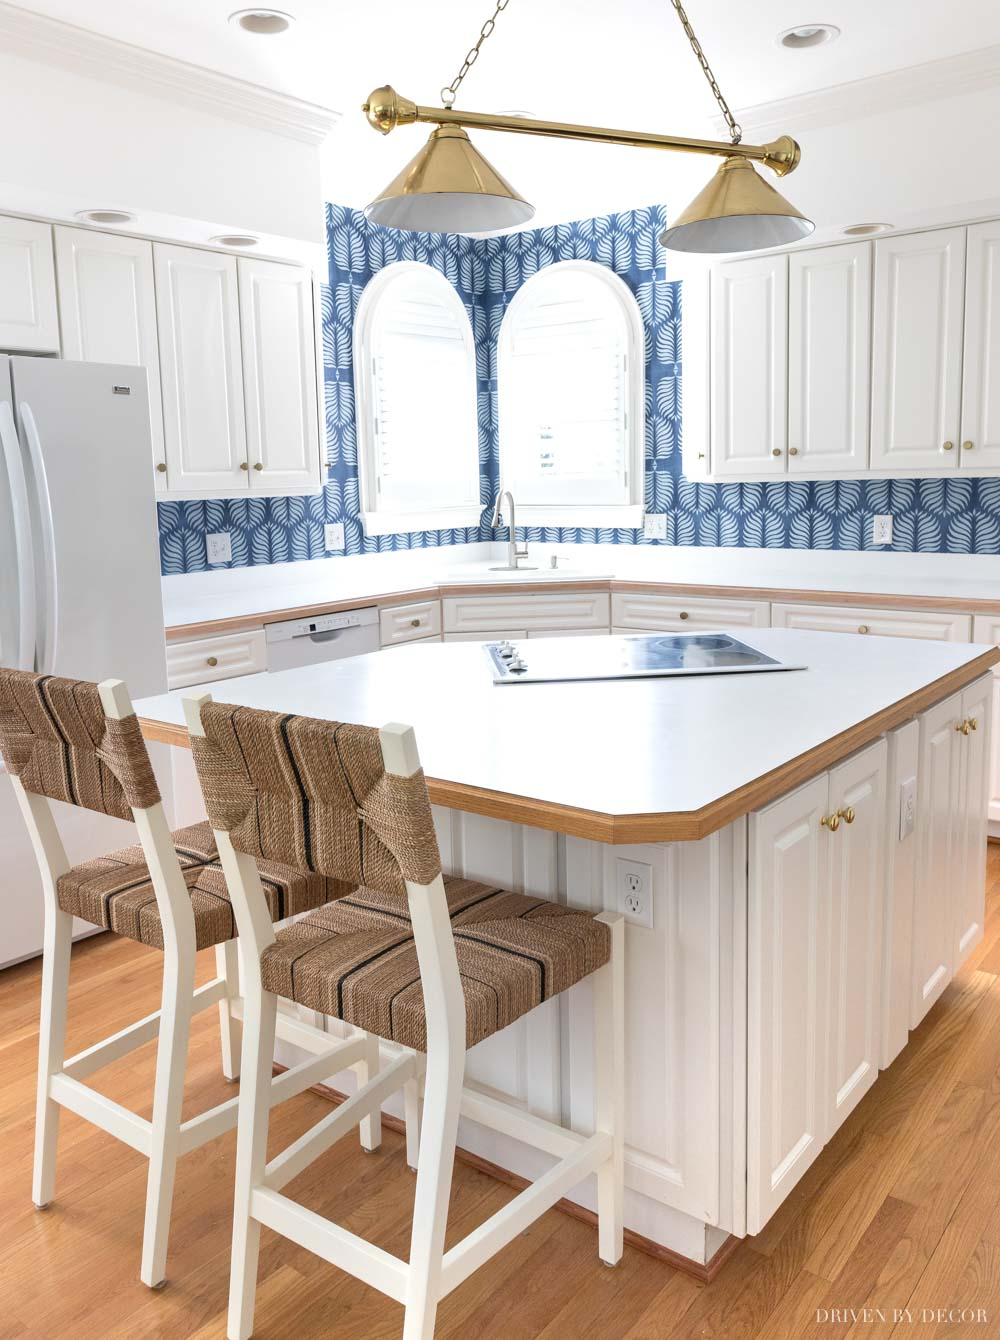 A wallpaper backsplash as an inexpensive way to update our dated kitchen!